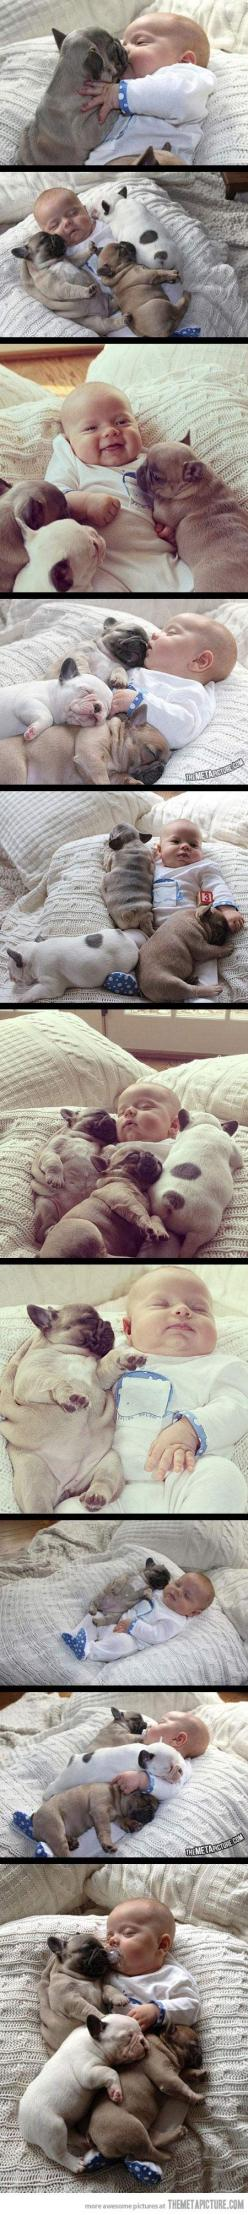 This may be the cutest thing EVER!!!: Cuteness Overload, French Bulldogs, My Heart, Puppy, Baby, Animal